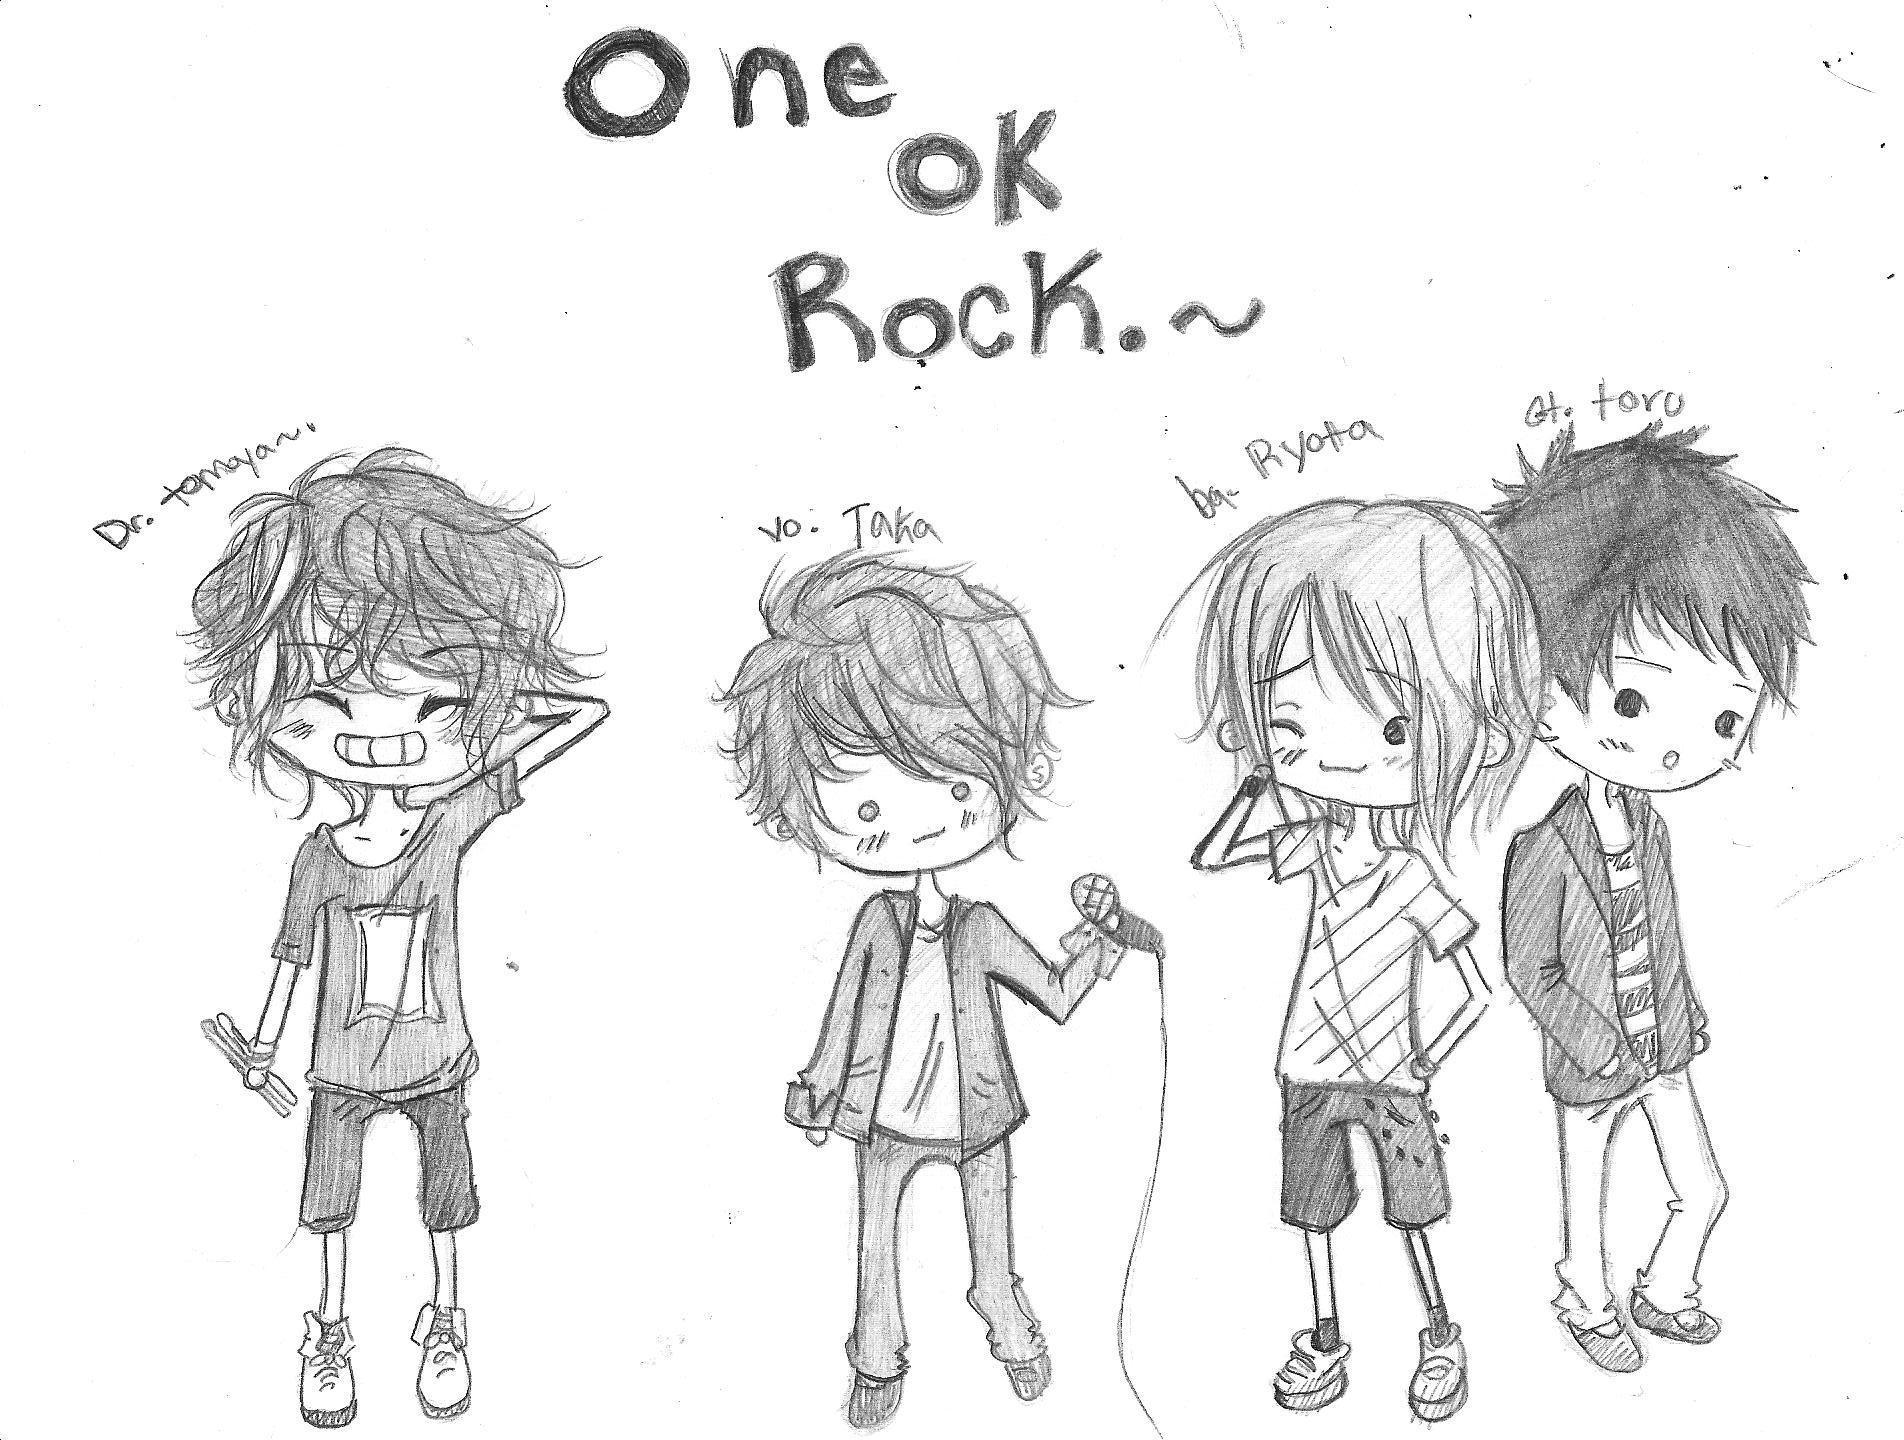 ONE OK ROCK by kiddycatkyo on DeviantArt